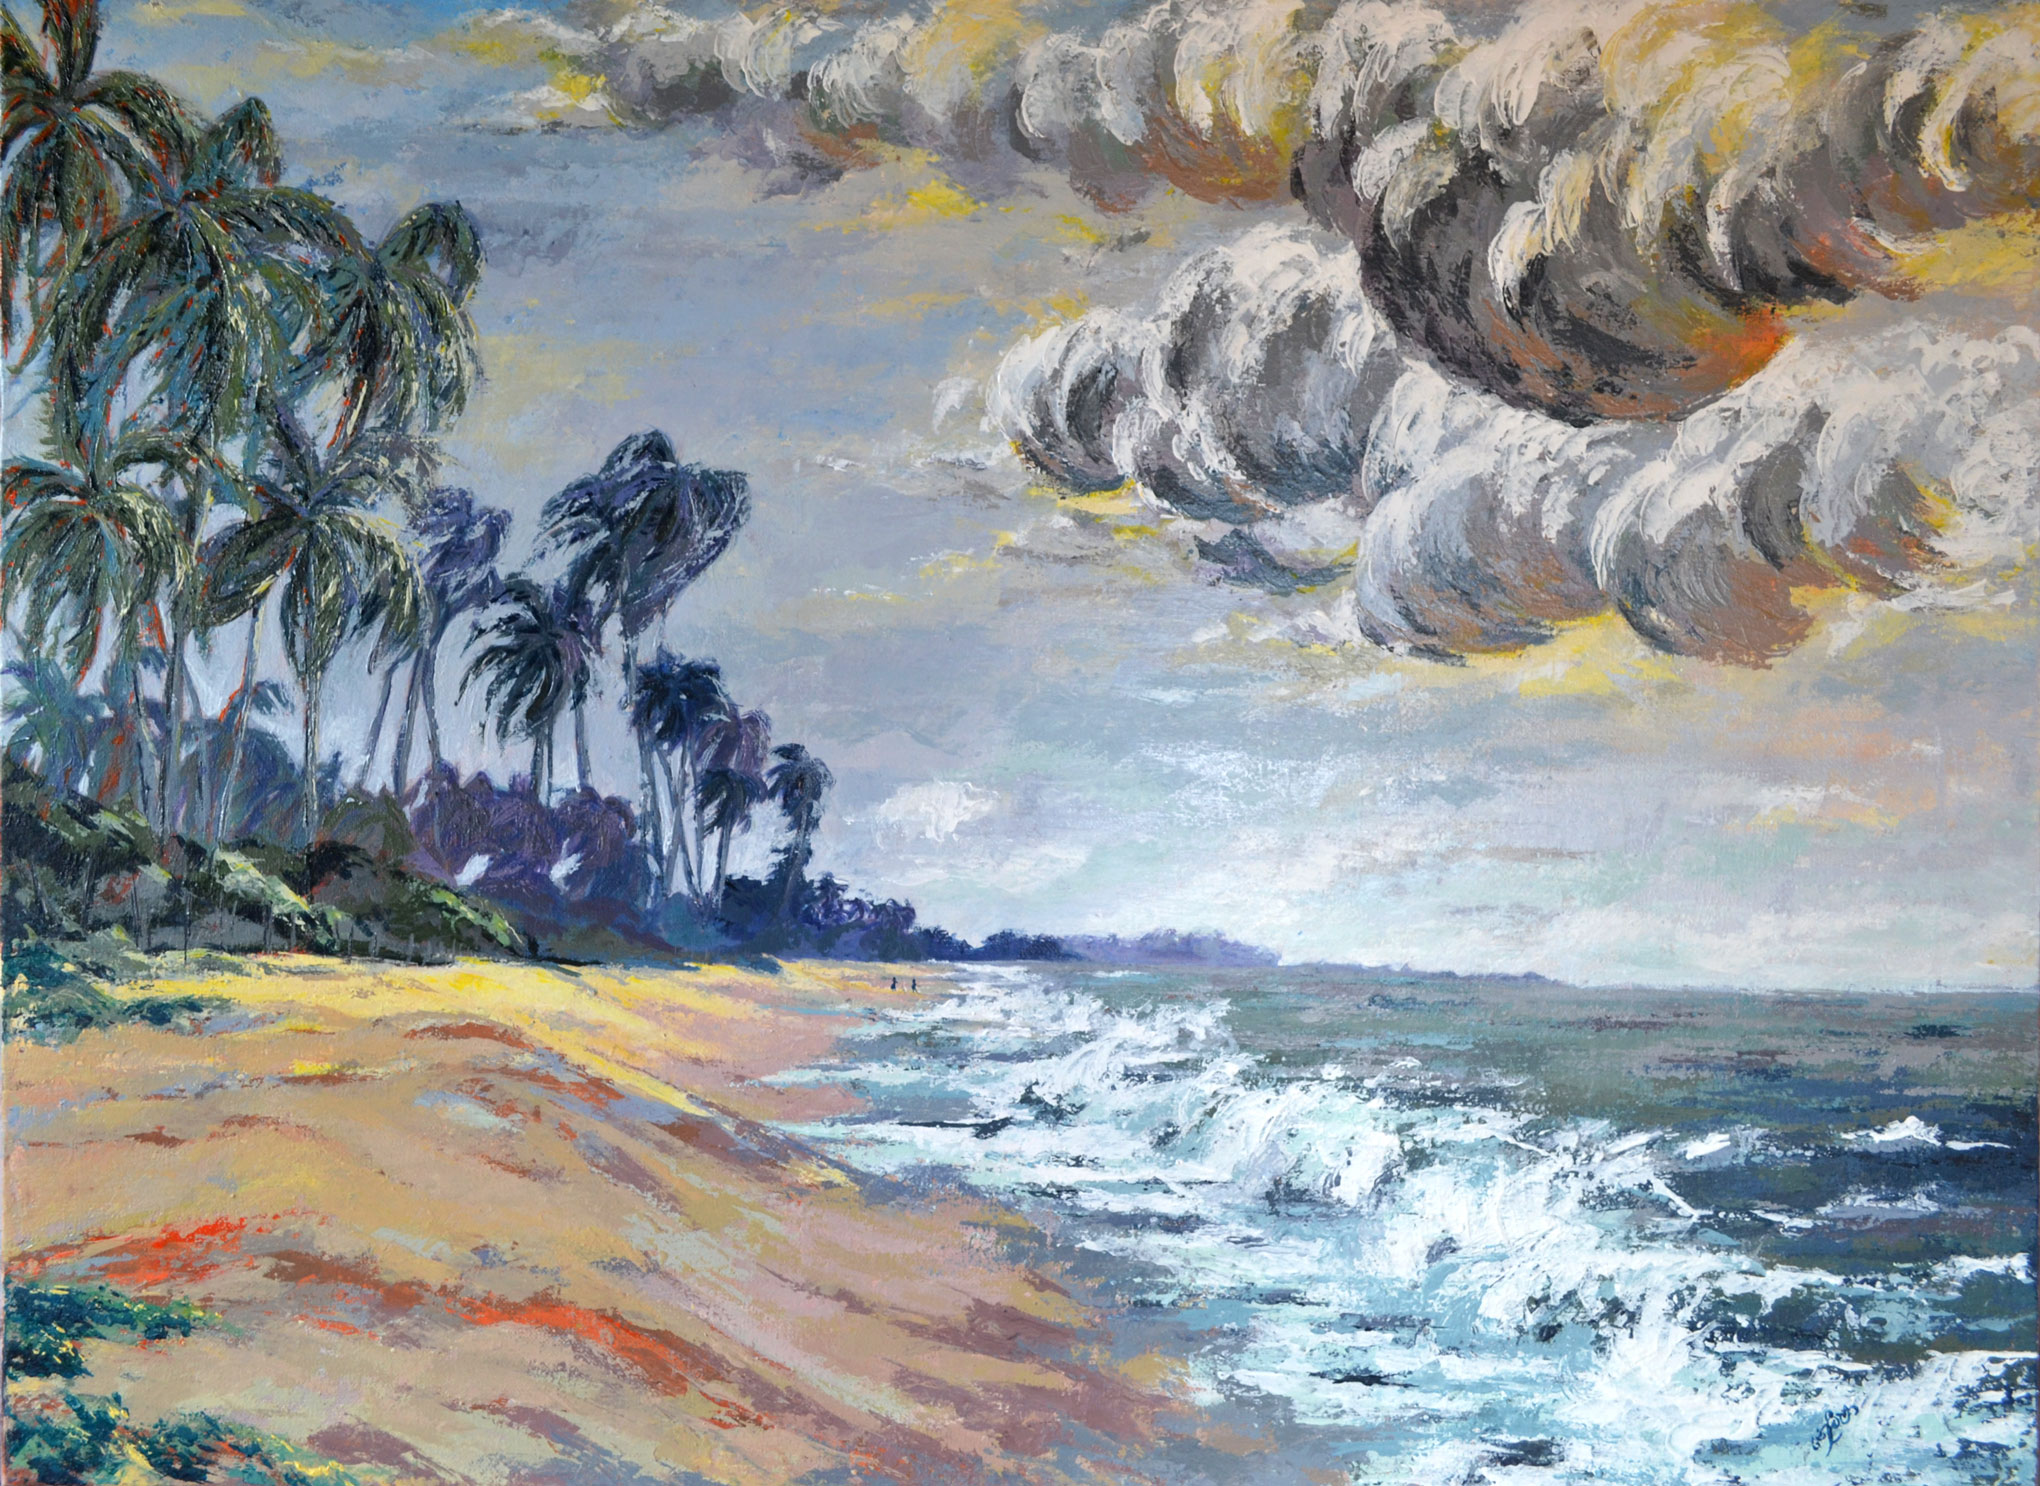 seascape with coconut trees and beach, srilankan beach